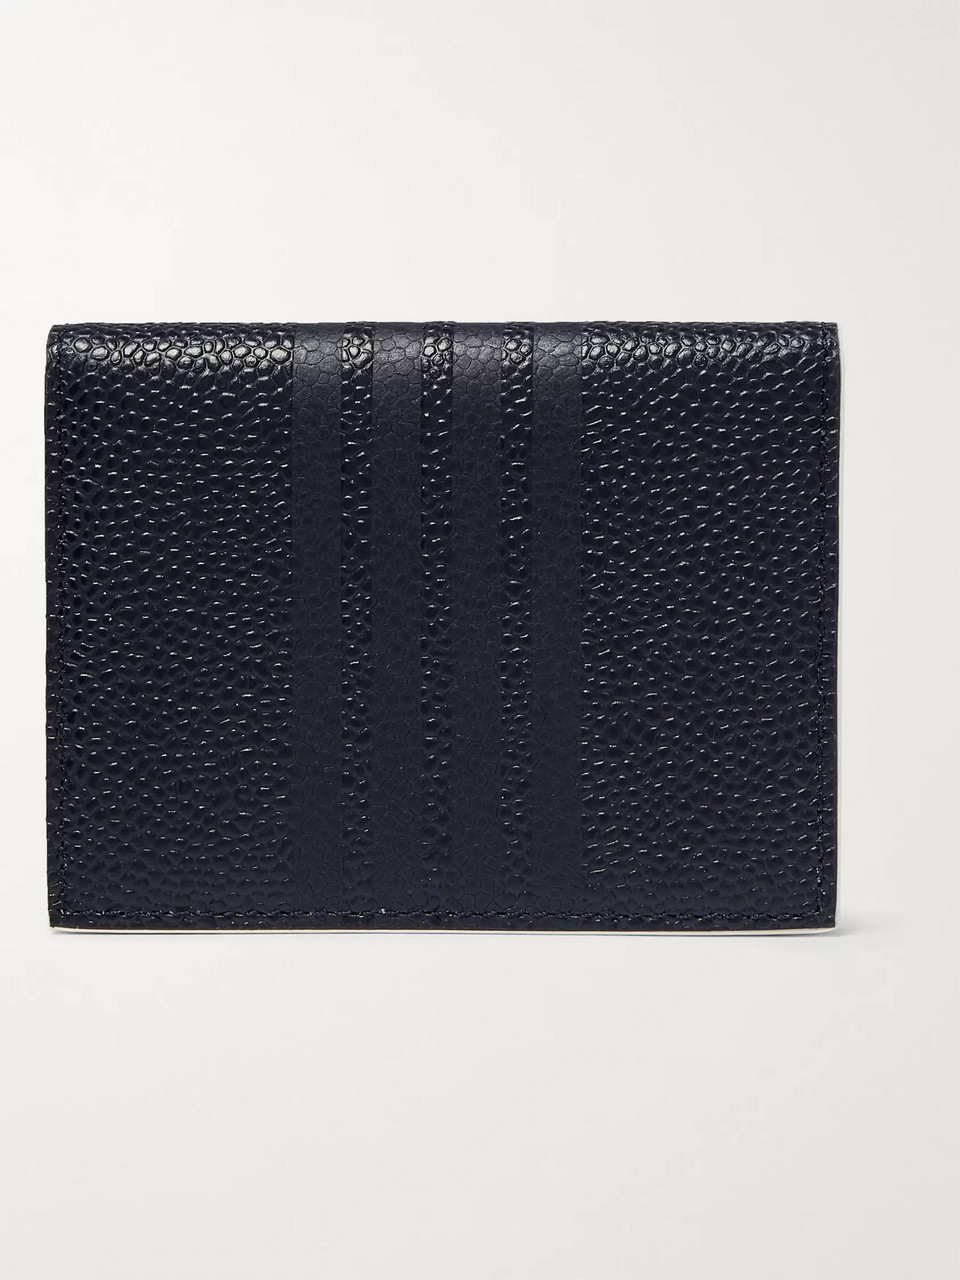 Thom Browne Grosgrain-Trimmed Pebble-Grain Leather Billfold Wallet